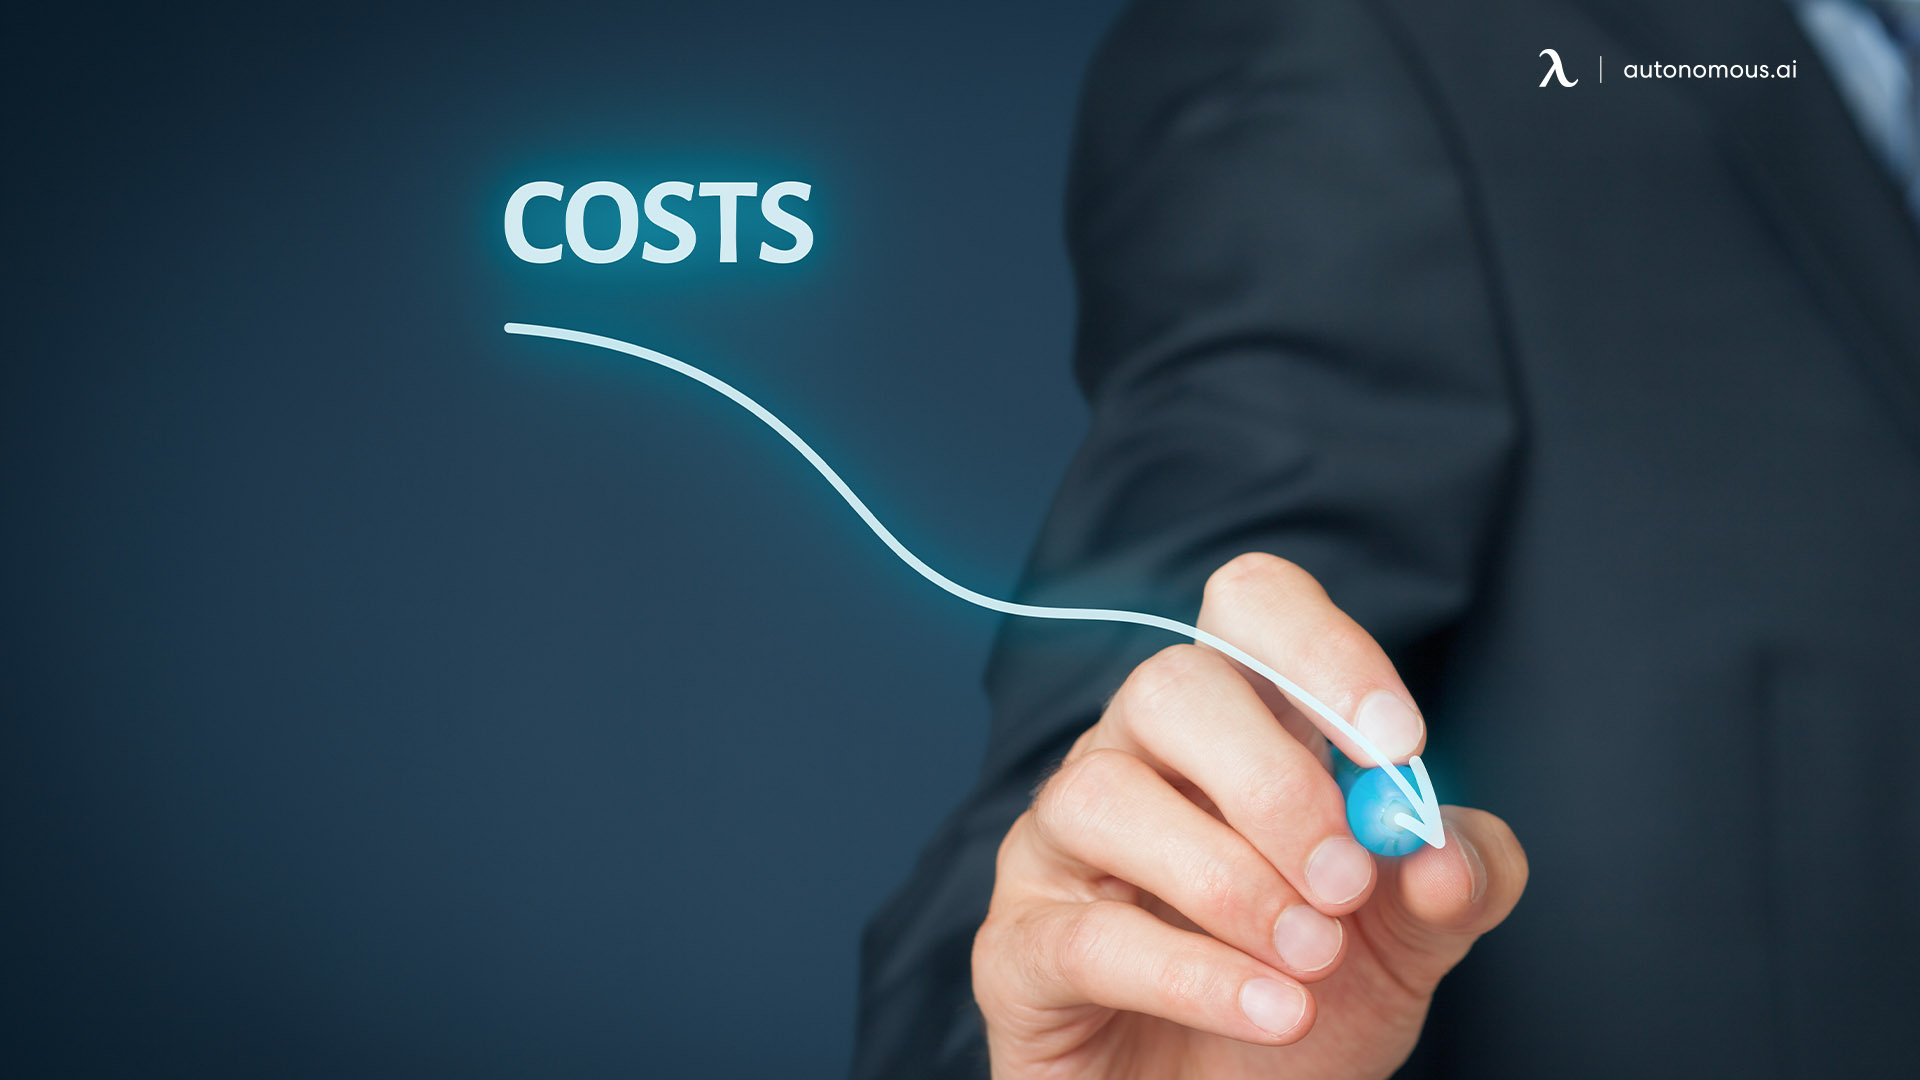 Hybrid Work Model Reduces the Cost of Running a Business